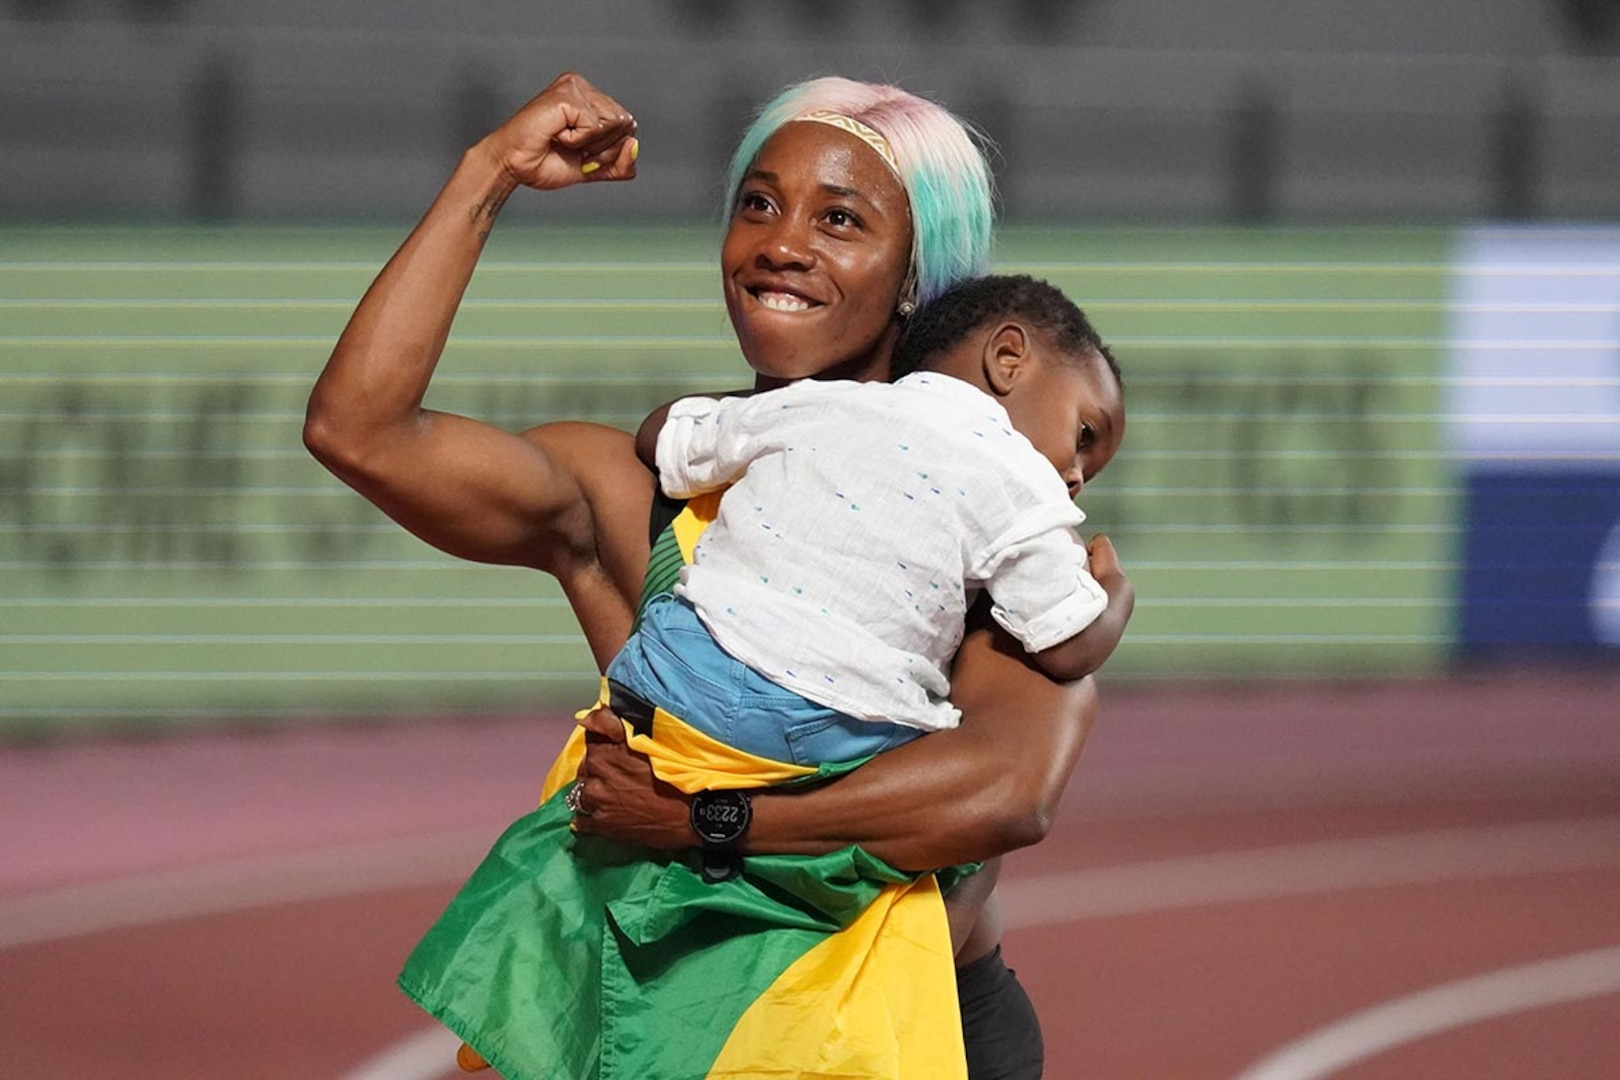 Shelly-Ann Fraser-Pryce celebrates with son, Zyon, after winning world title